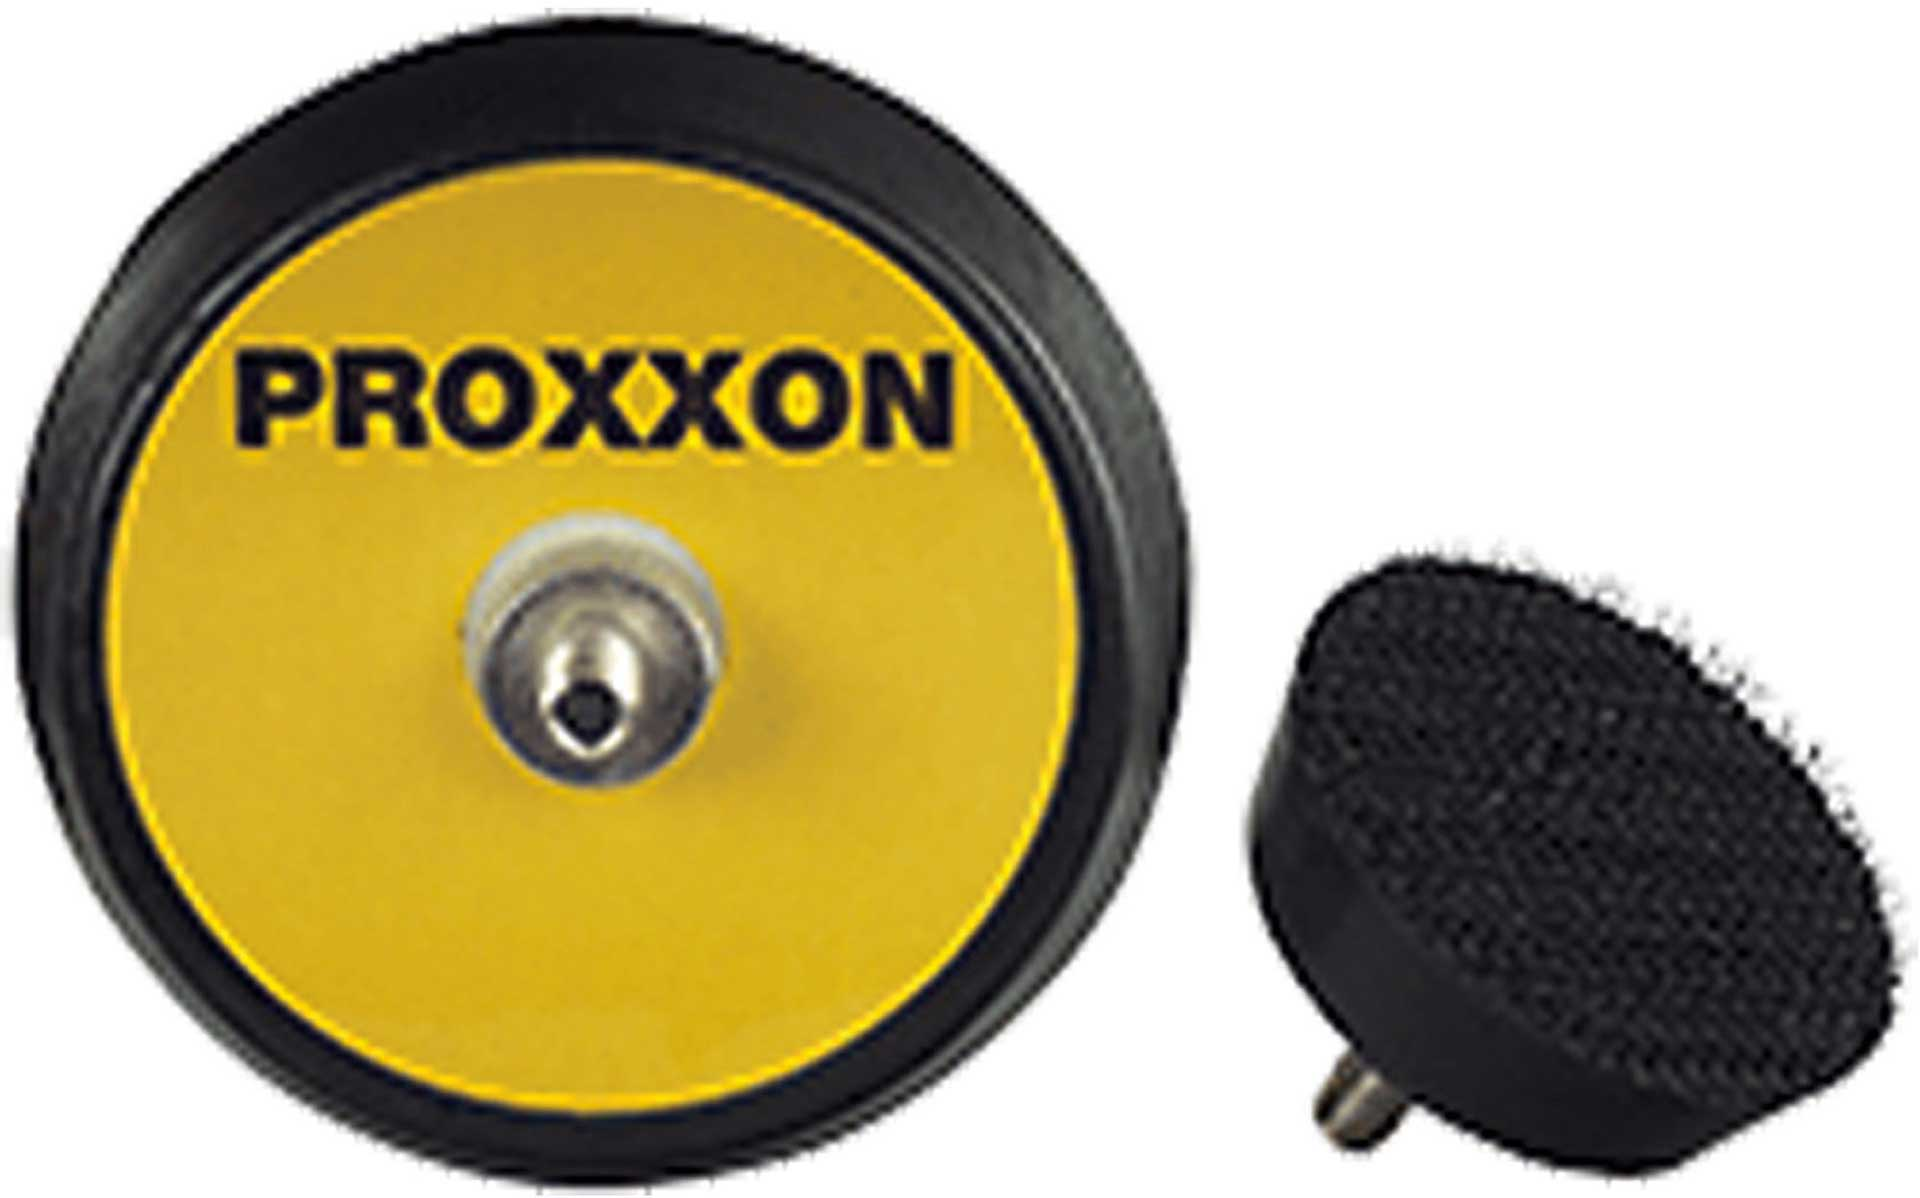 PROXXON FOAM SUPPORT PLATE D=50MM FOR WP/E, WP/A, EP/E, EP/A